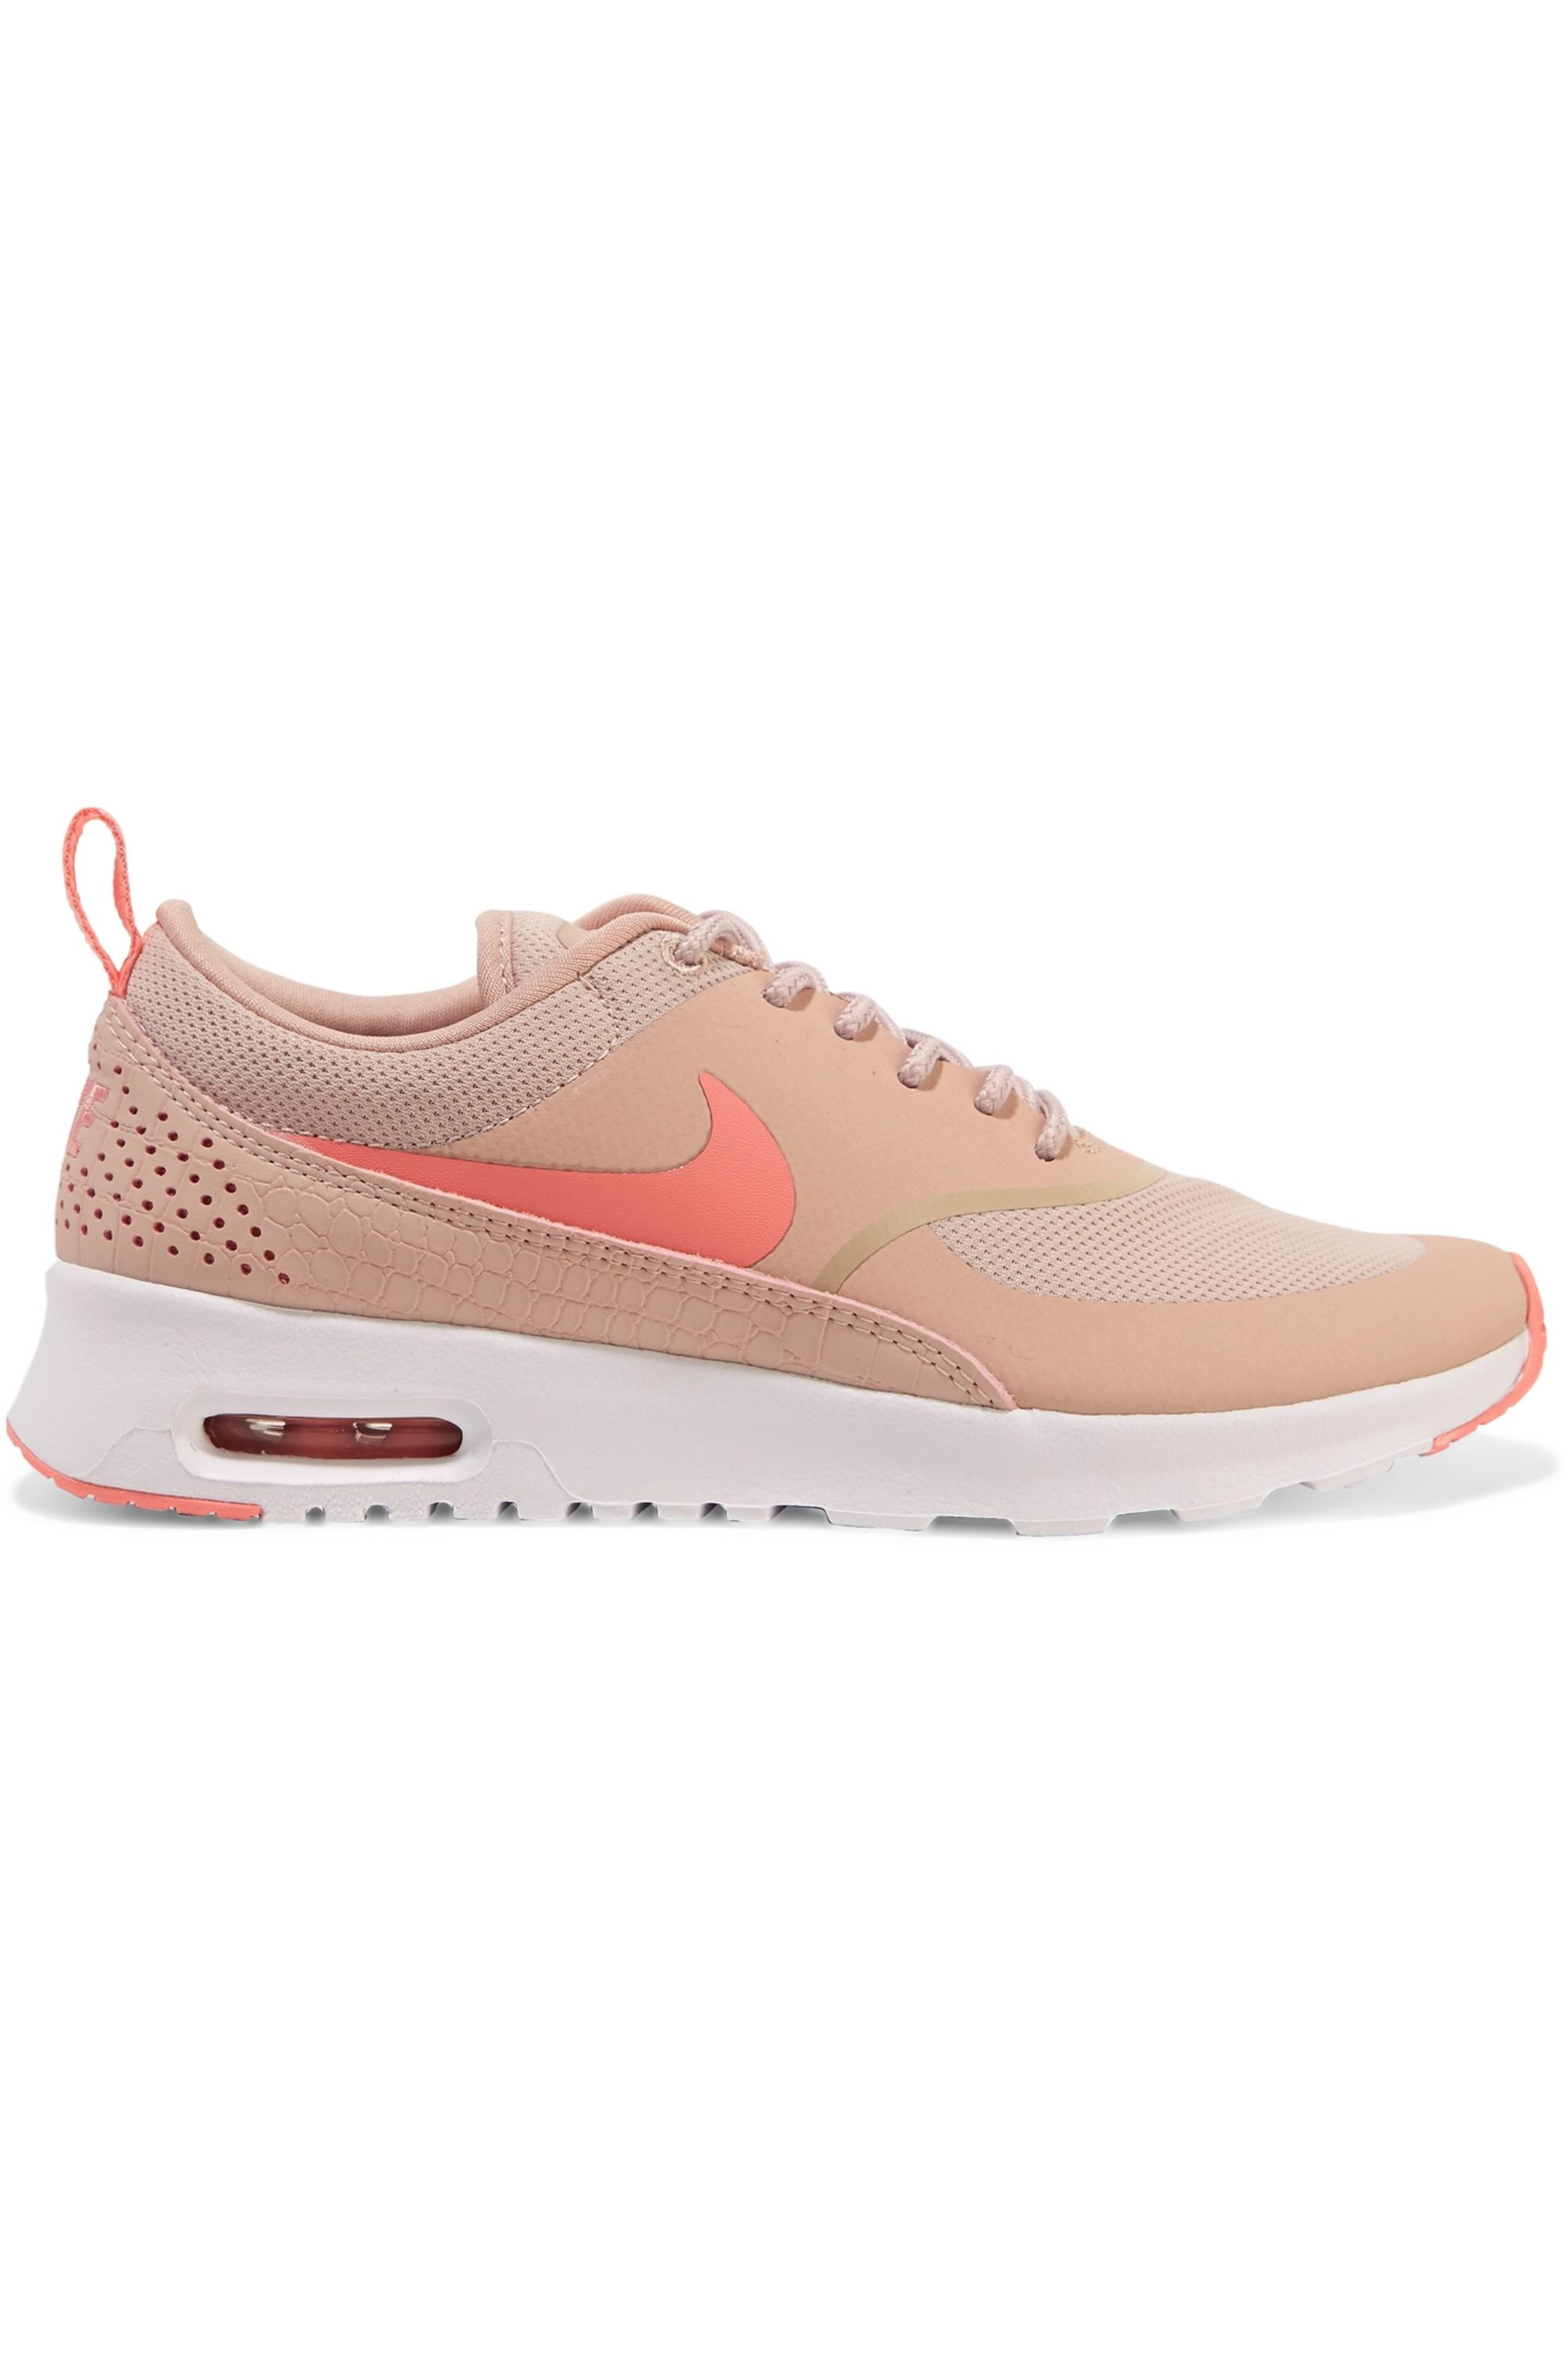 Nike Air Max Thea embossed leather and mesh sneakers